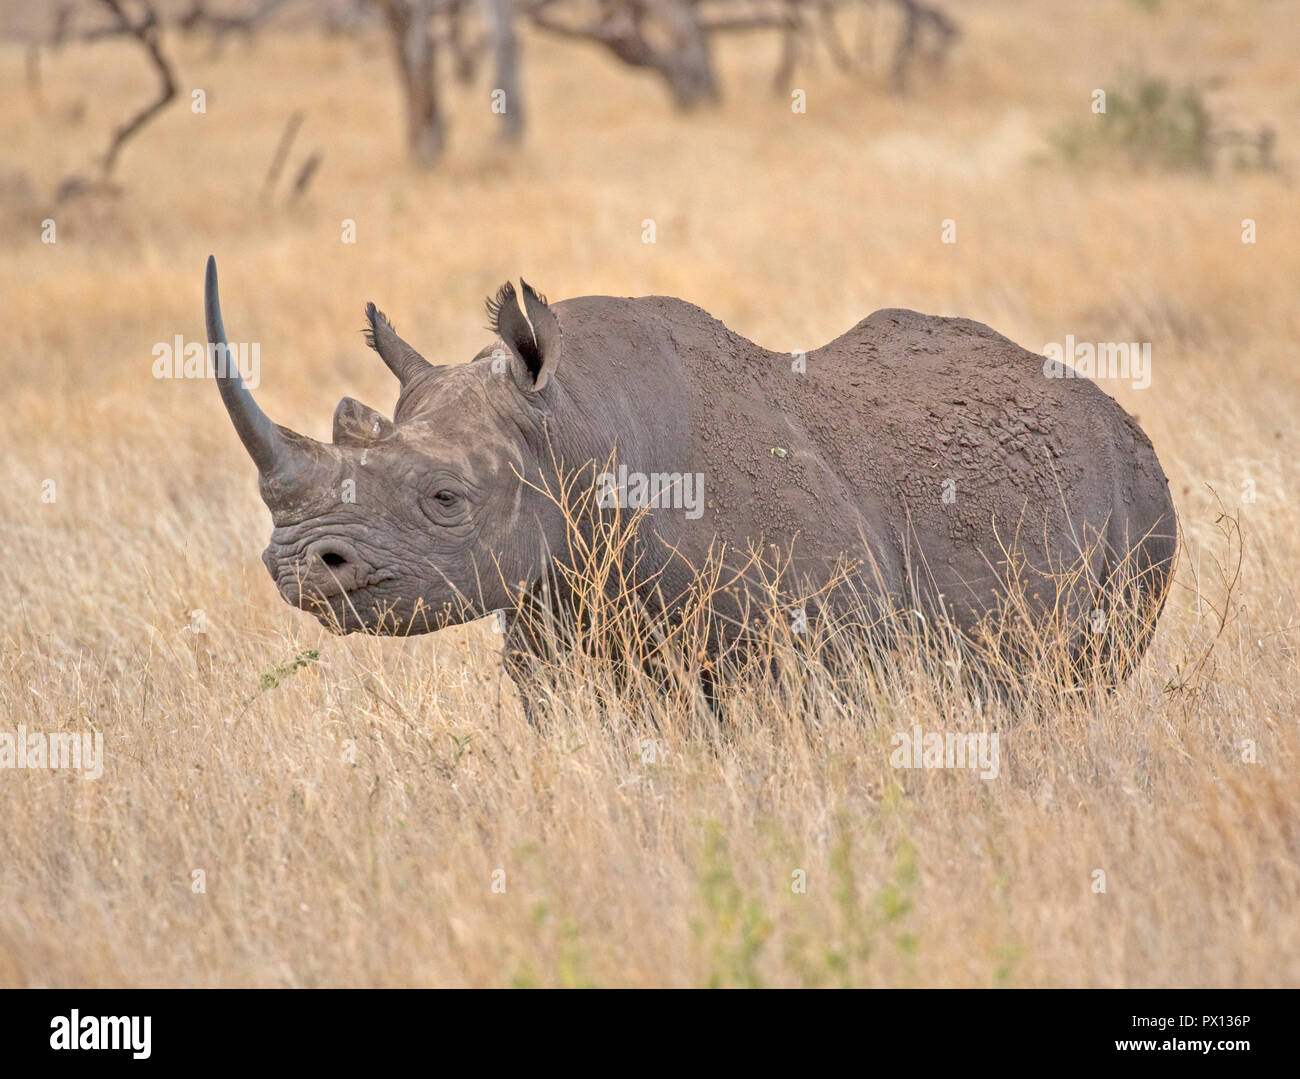 Black rhino Diceros bicornis at Lewa Wildlife Conservancy Kenya a vitally important conservation area which has built up the population from 15 in 198 - Stock Image